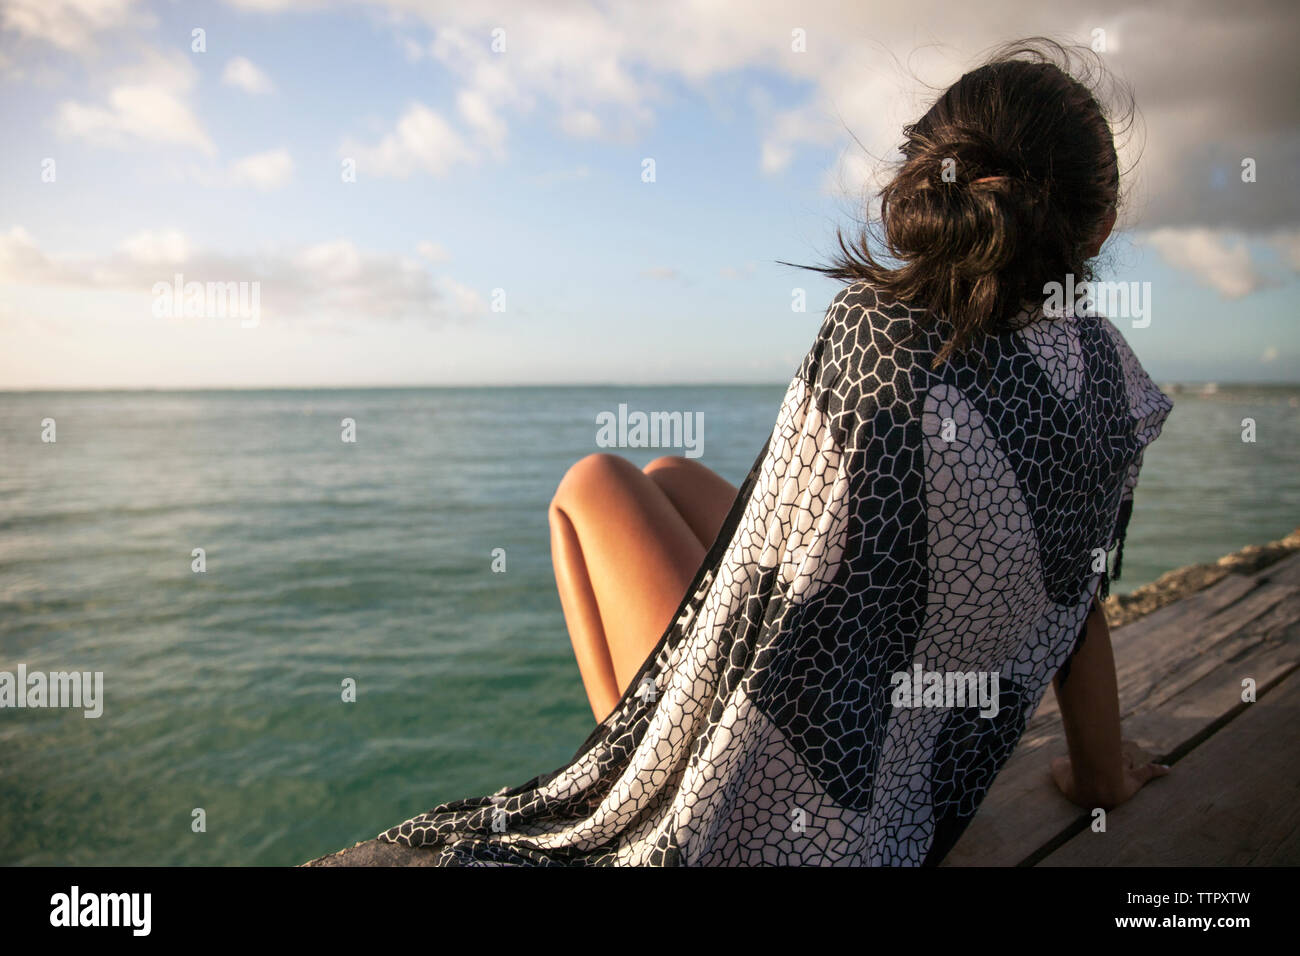 Rear view of woman wrapped in blanket relaxing on boardwalk by sea - Stock Image